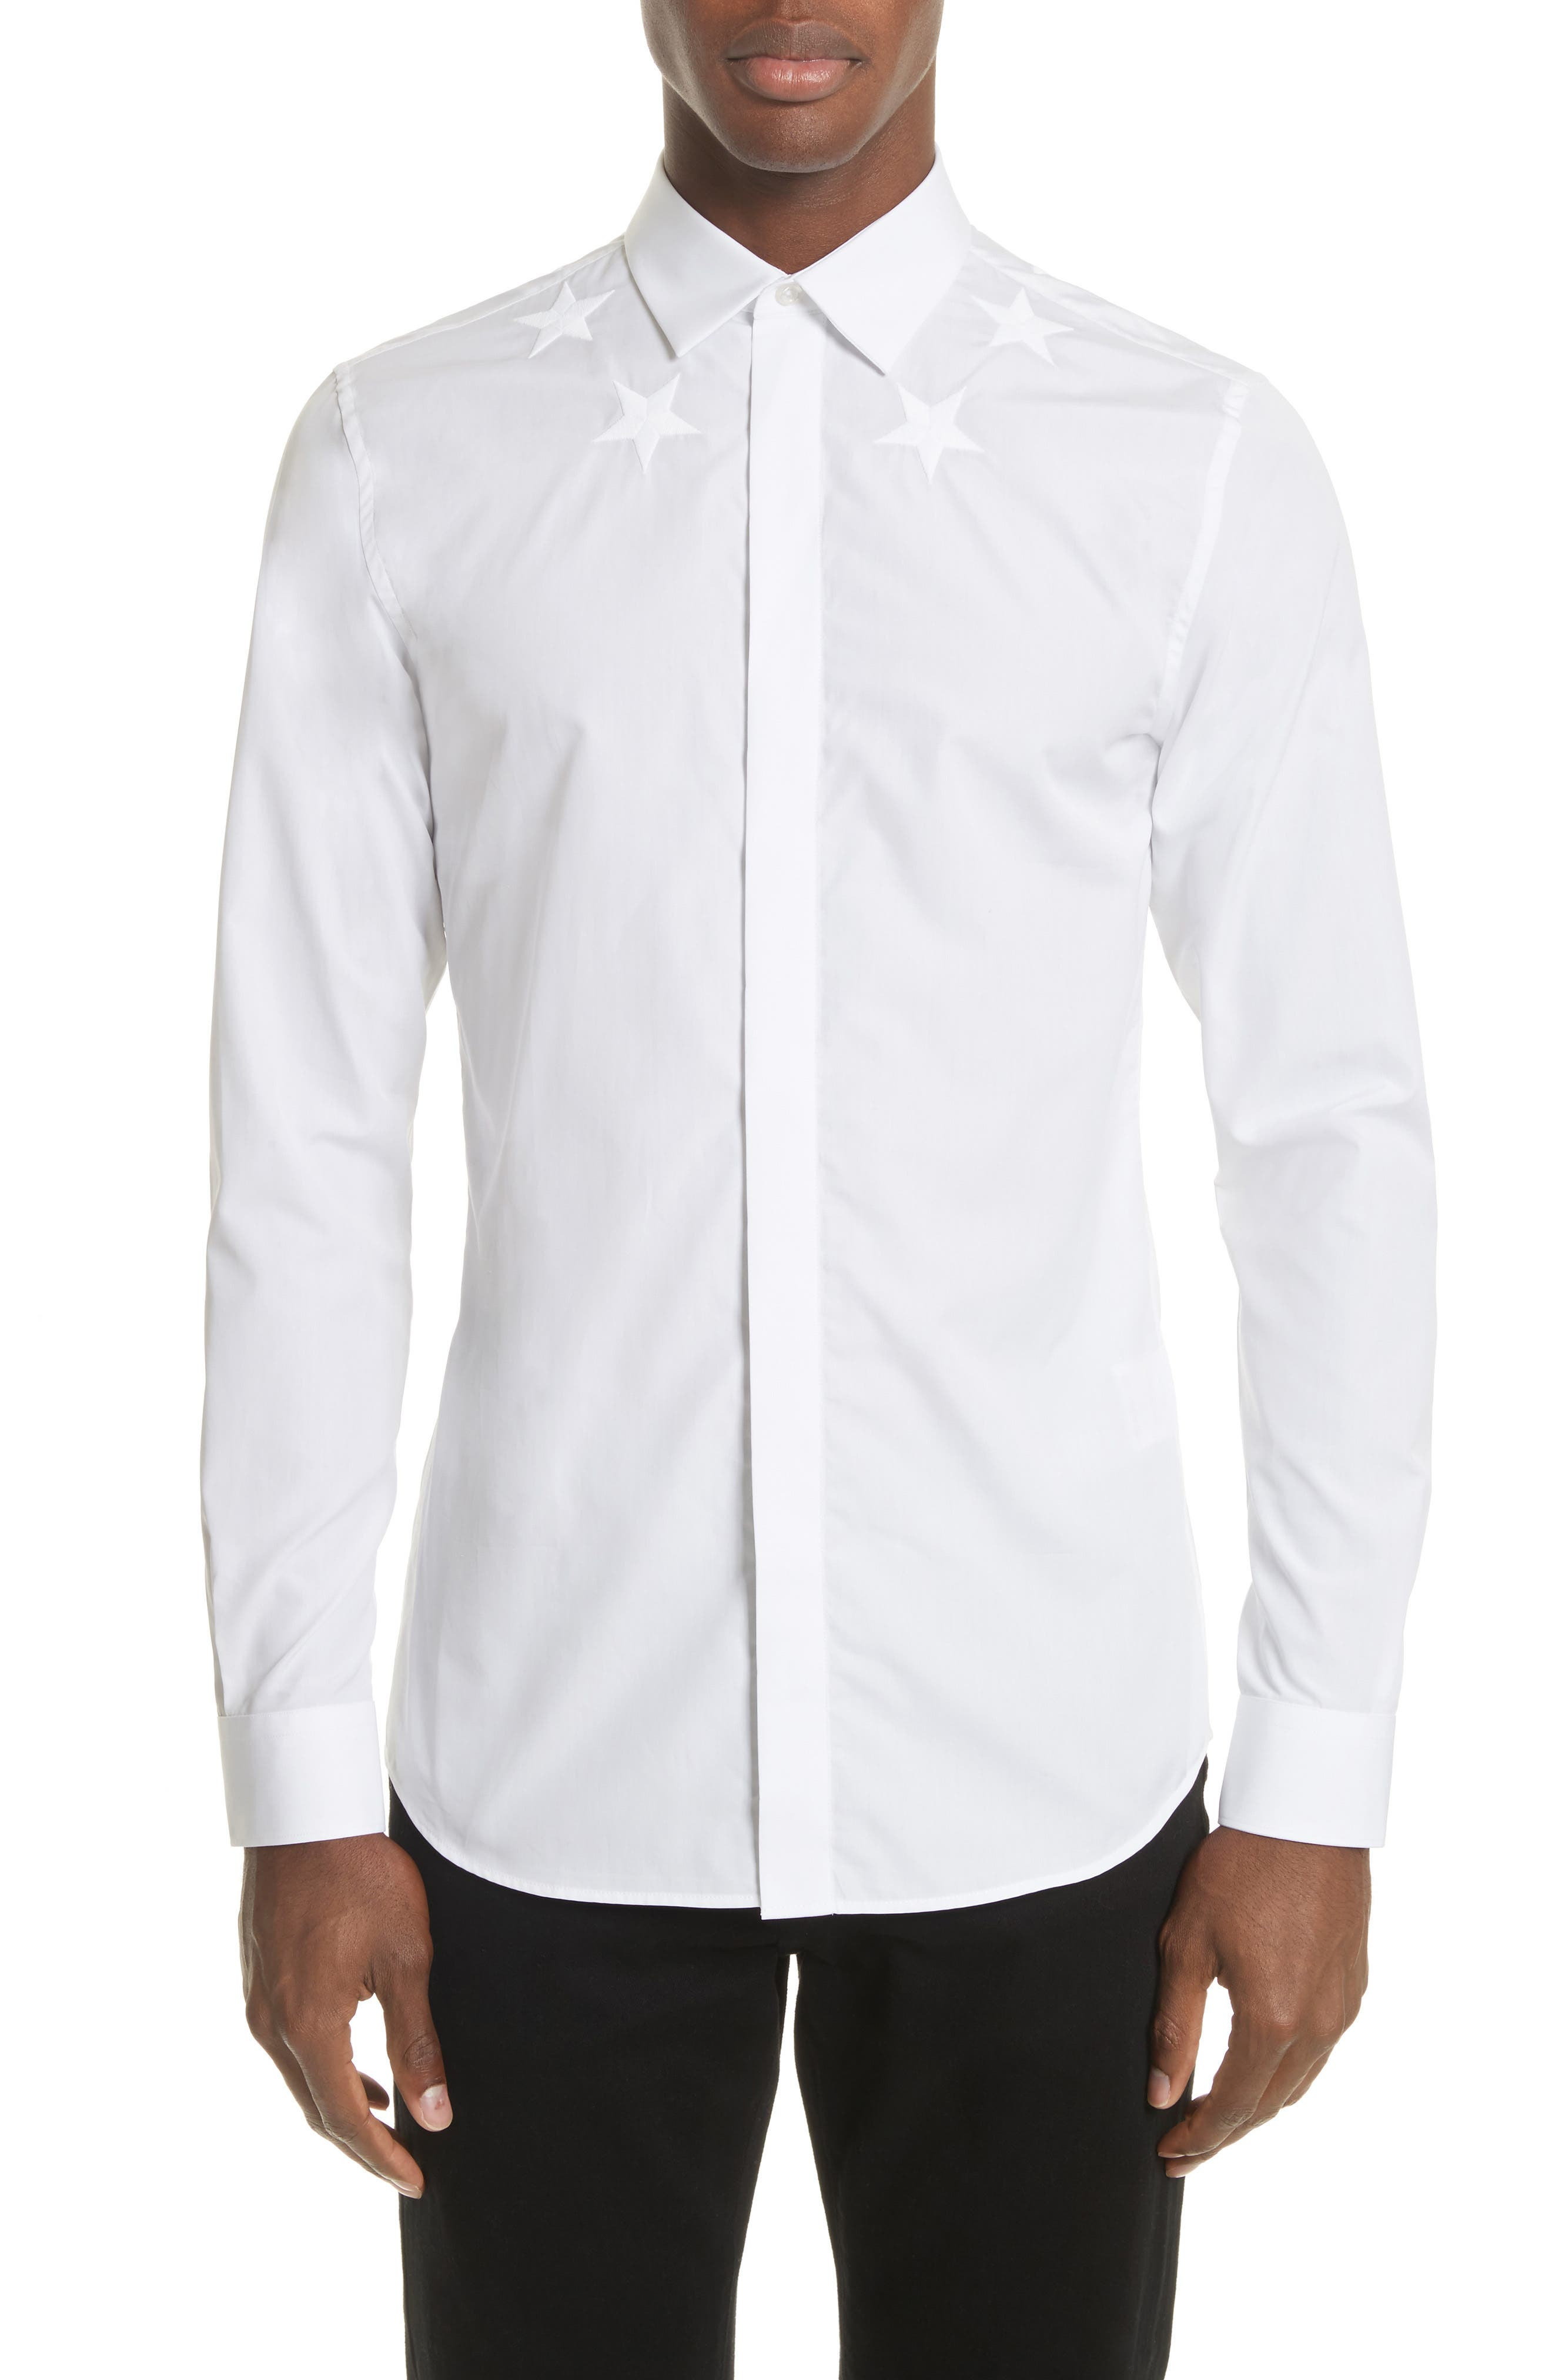 Embroidered Star Dress Shirt,                         Main,                         color, 100